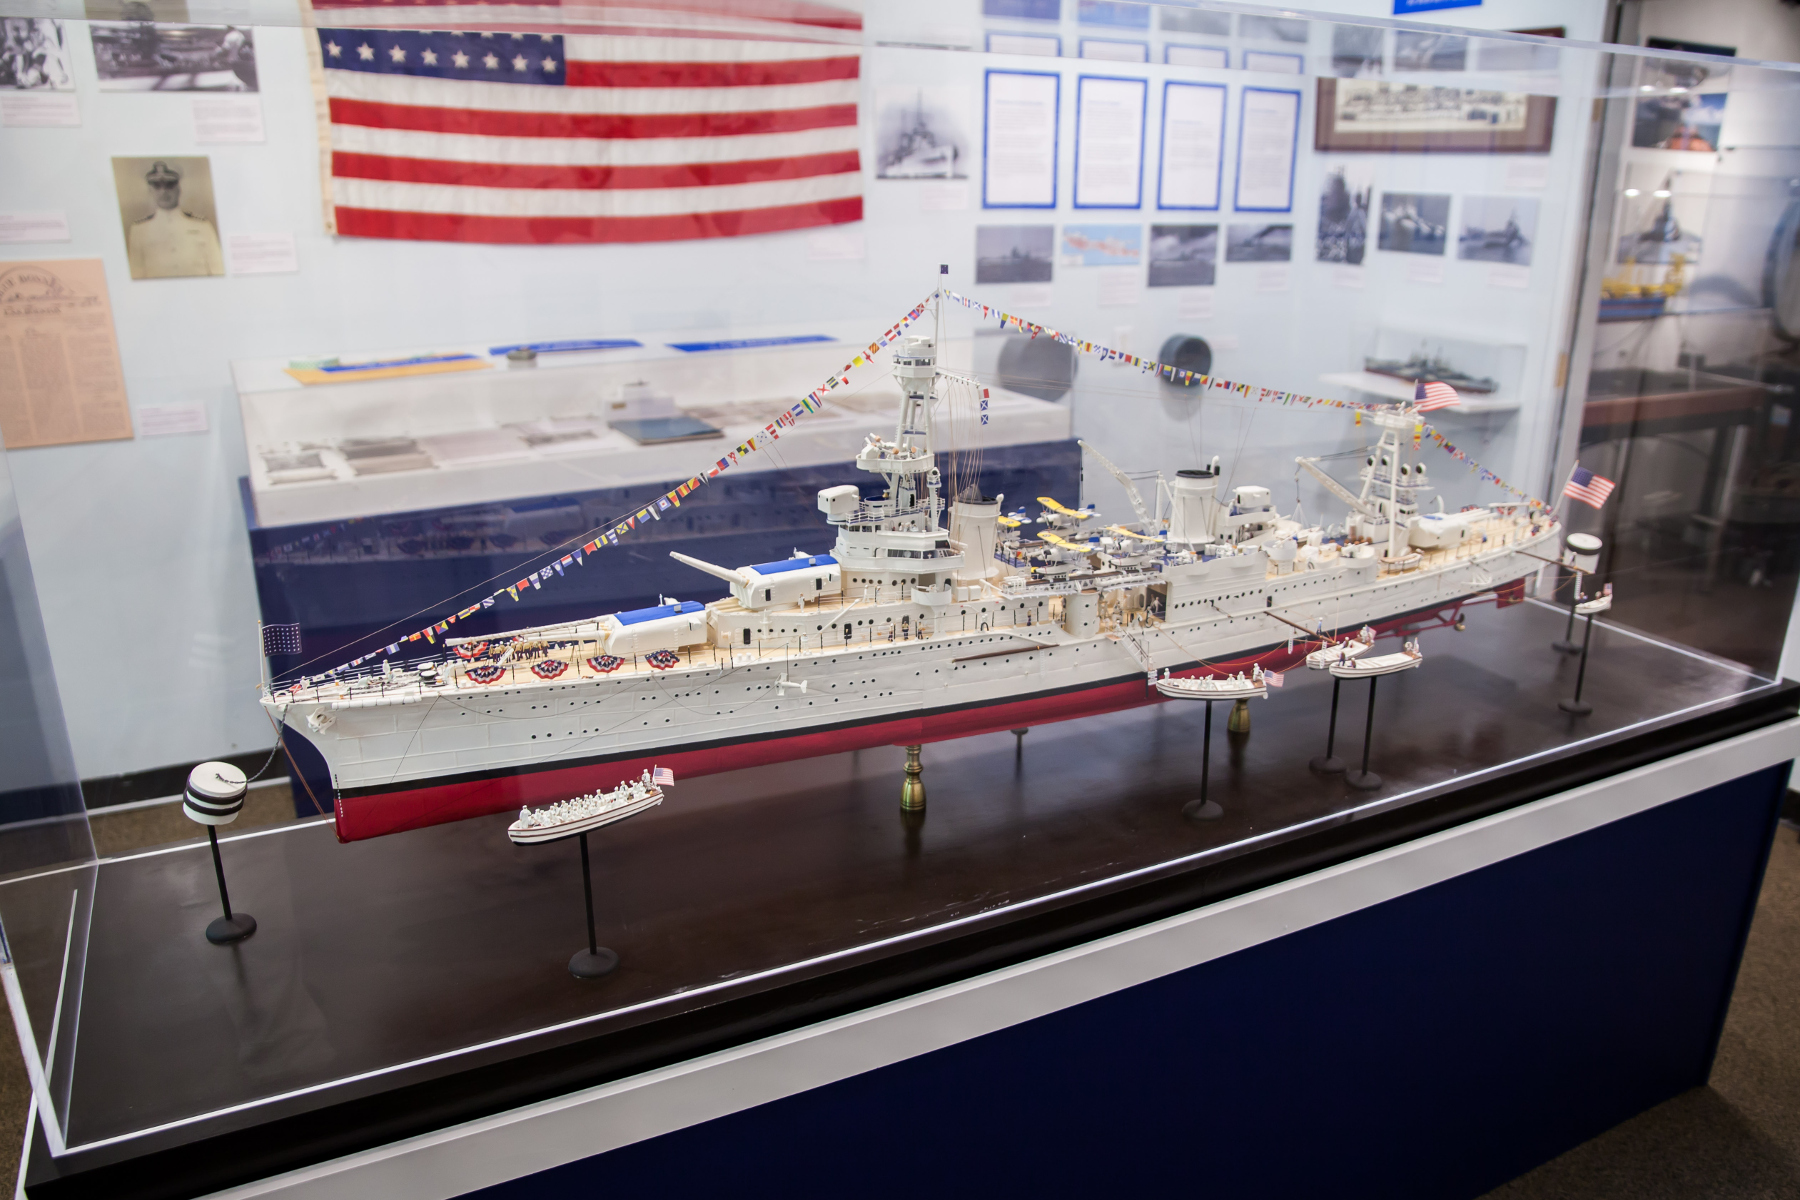 A Model of the Cruiser Houston in the Houston Room of the  Houston Maritime Museum (William Lardas)